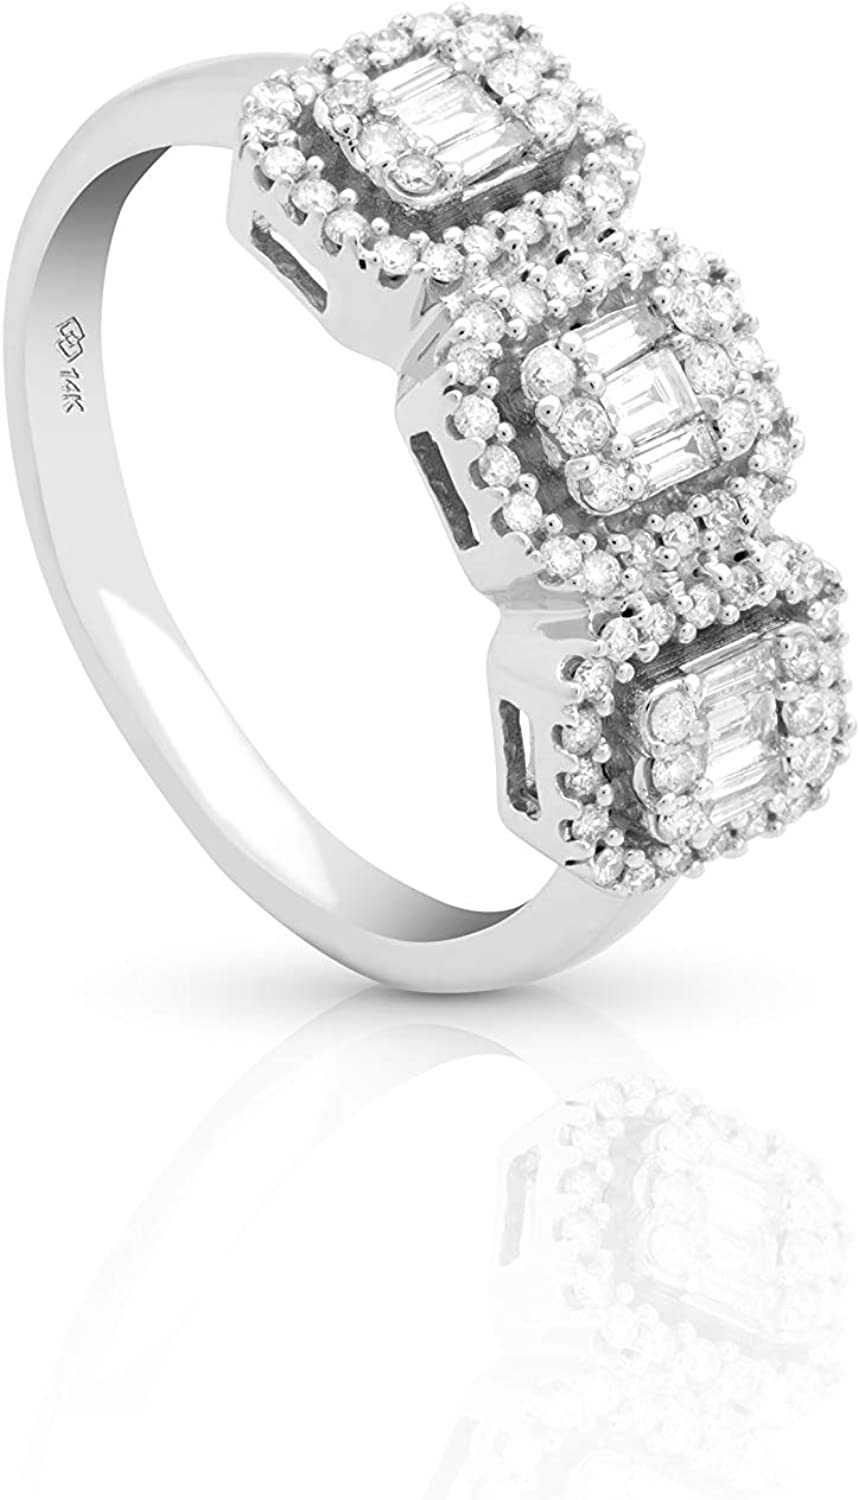 Femme Luxe 0.50 carats ct. and t.w. service Superlatite Baguette Three-Stone Round